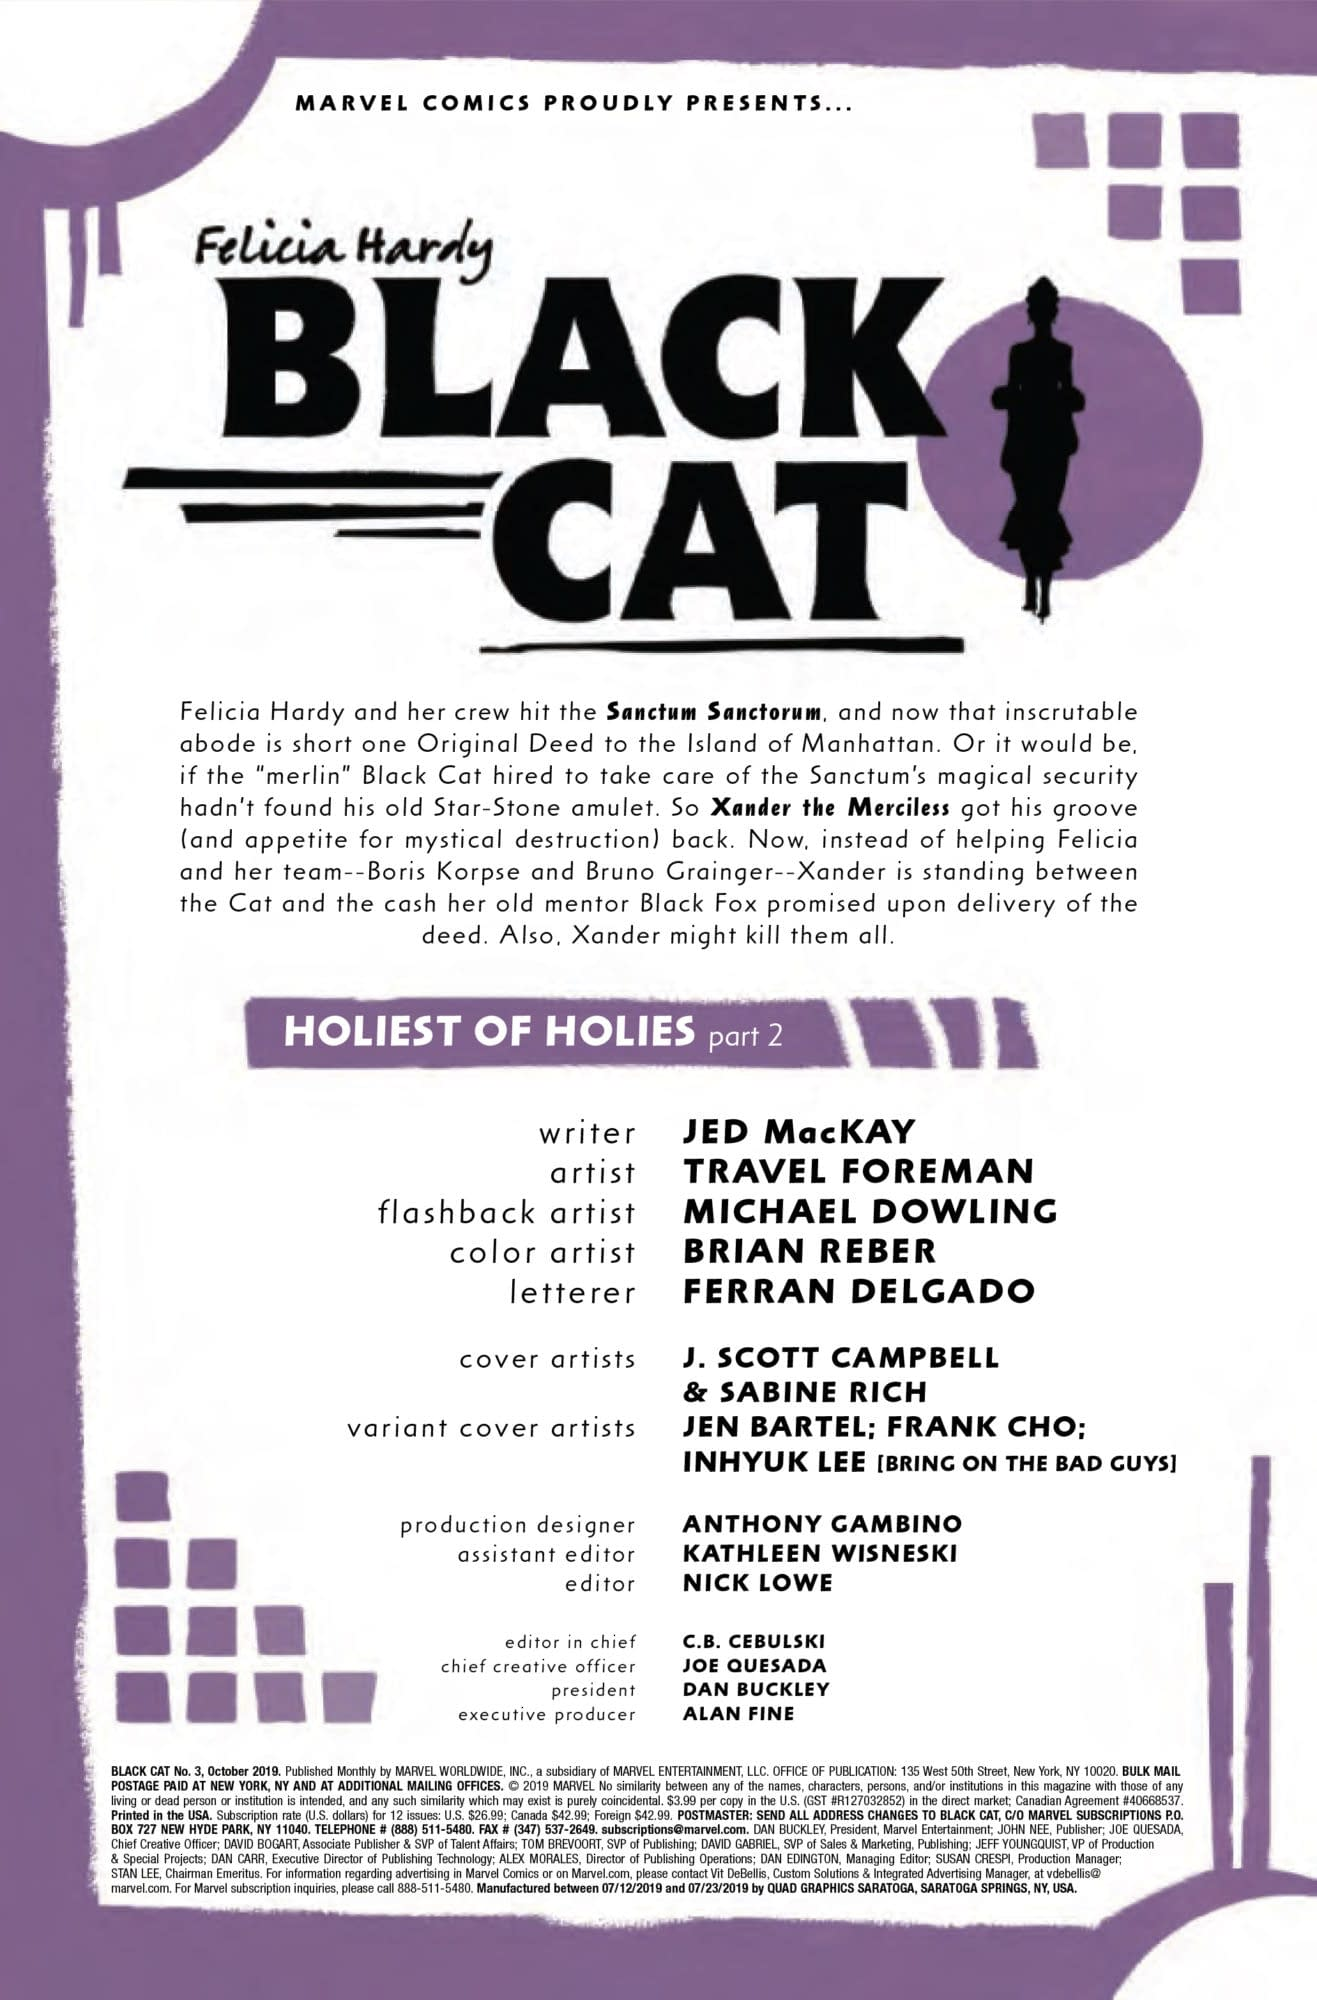 A Case of Mistaken Identity in Black Cat #3 [Preview]